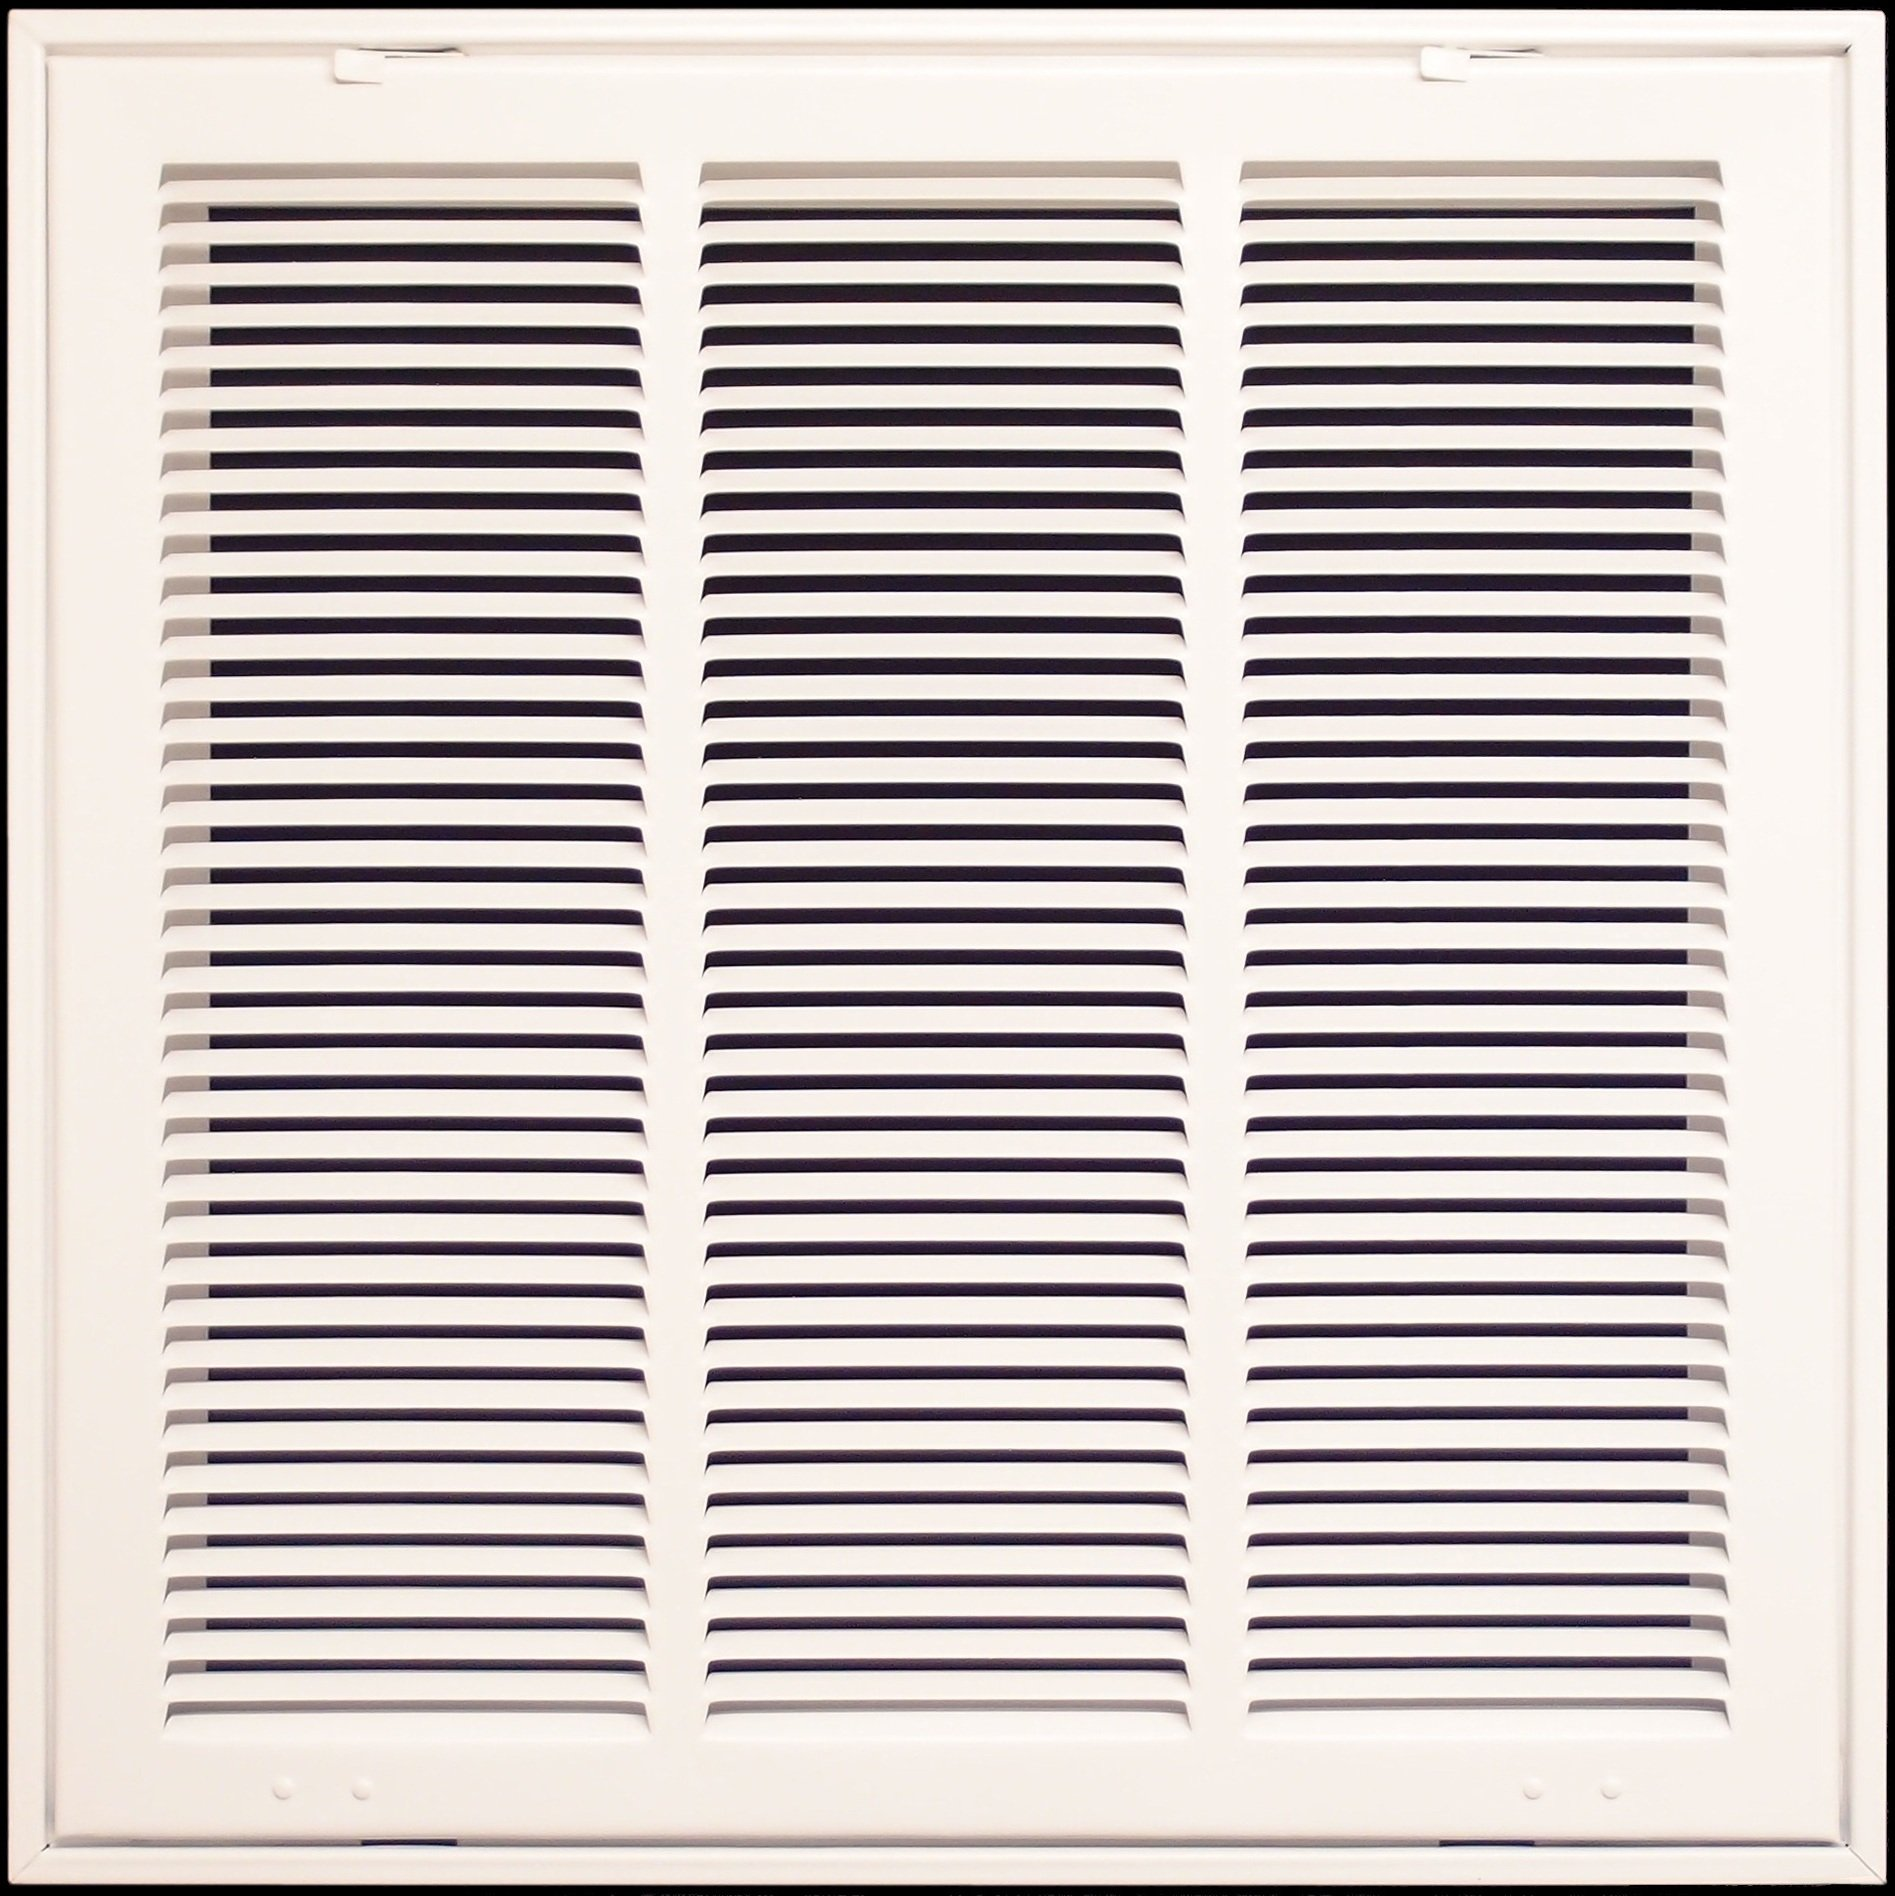 18'' X 18 Steel Return Air Filter Grille for 1'' Filter - Fixed Hinged - ceiling Recommended - HVAC DUCT COVER - Flat Stamped Face - White [Outer Dimensions: 20.5''w X 20.5''h]